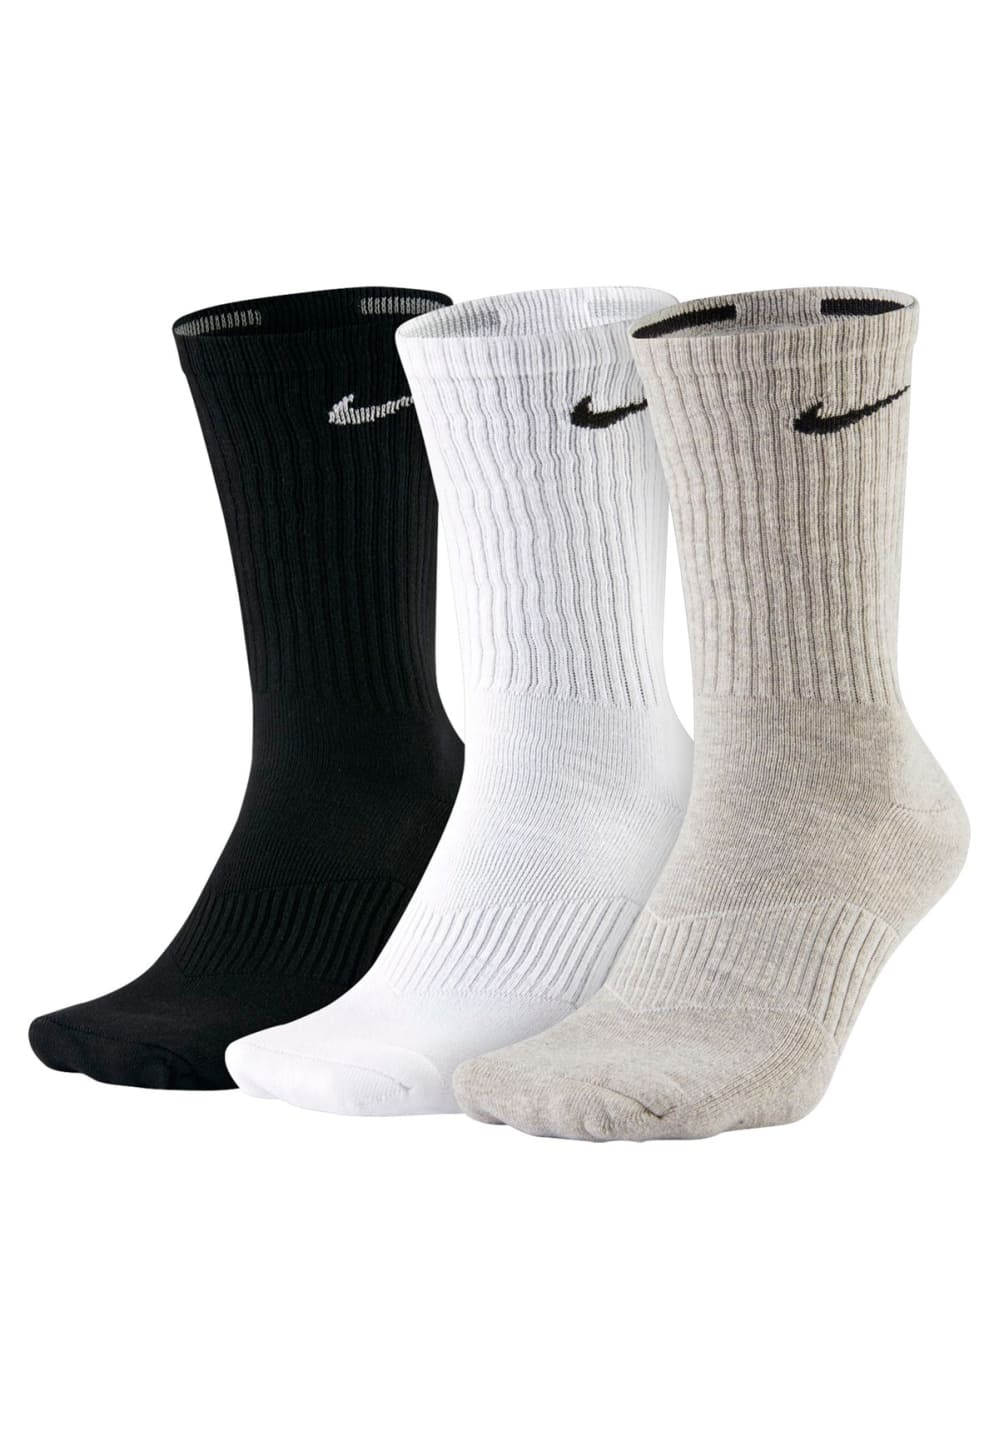 Nike 3PPK Cotton Cushion Crew Laufsocken - Grau, Gr. S